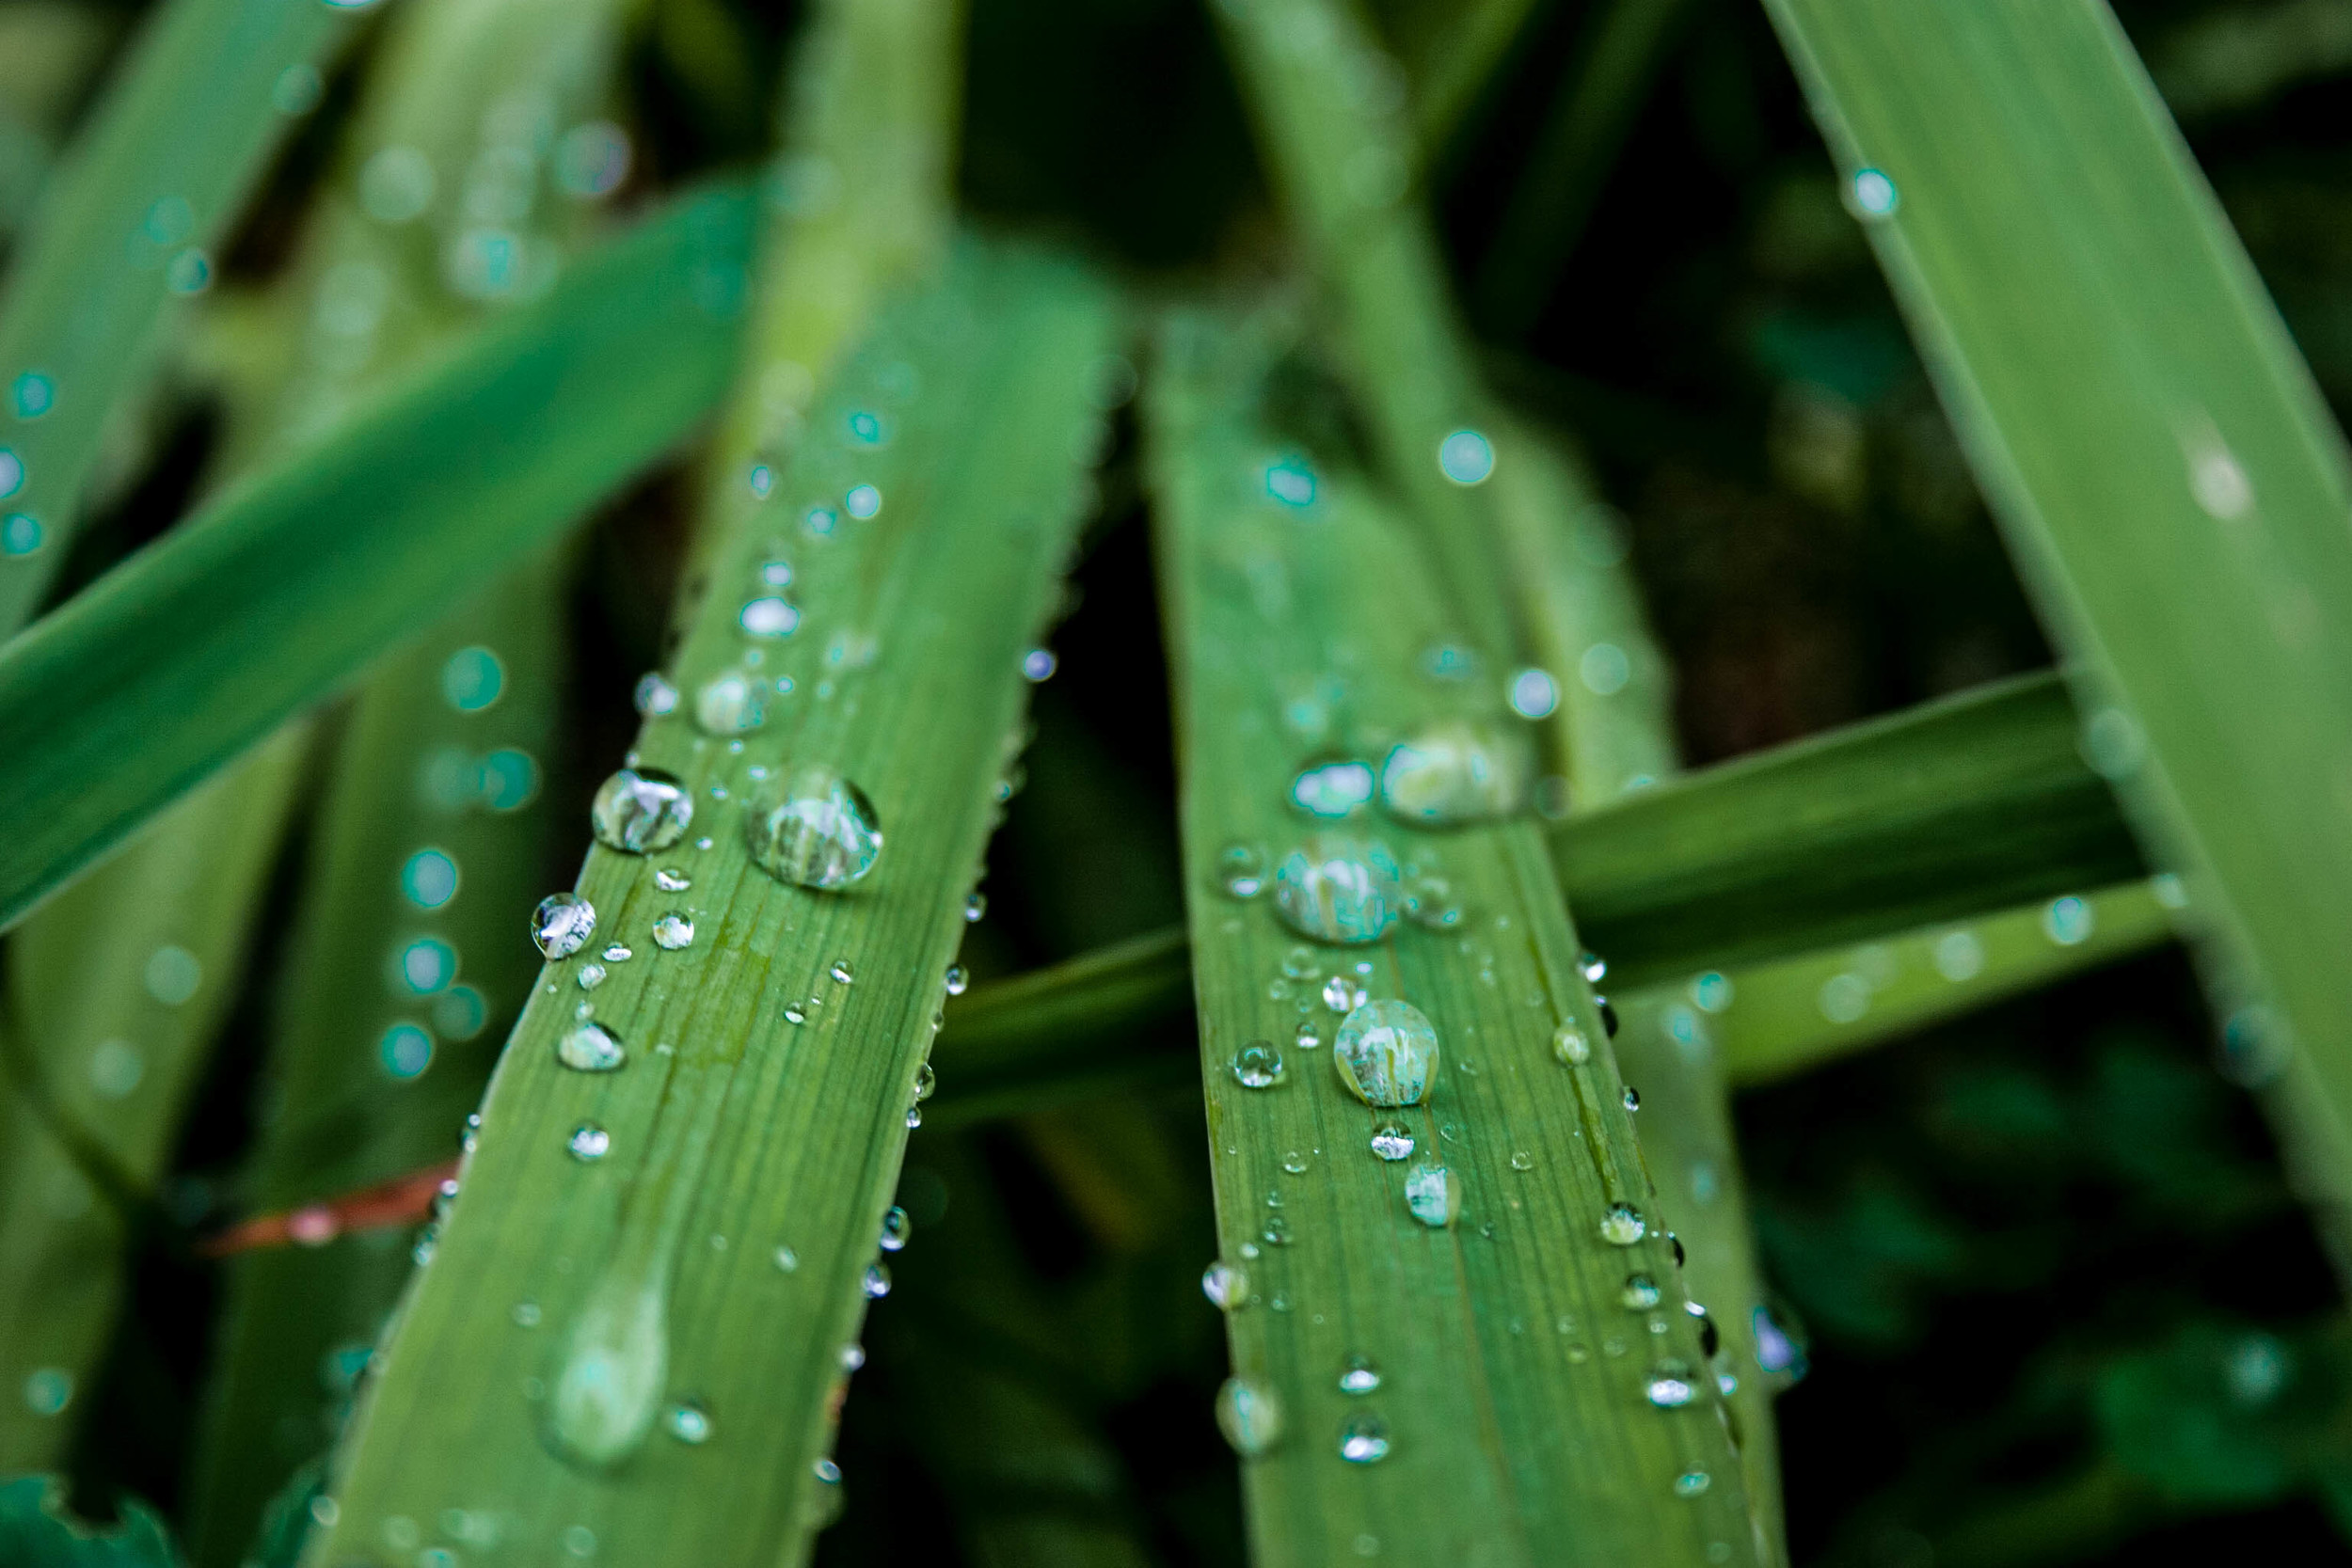 This photo was taken in my backyard. It was raining outside and I noticed how beautiful the rain drops looked on the plants. I grabbed my camera and laid down in the wet grass. Even though I was soaked and muddy after I took the photo, it was well worth it.